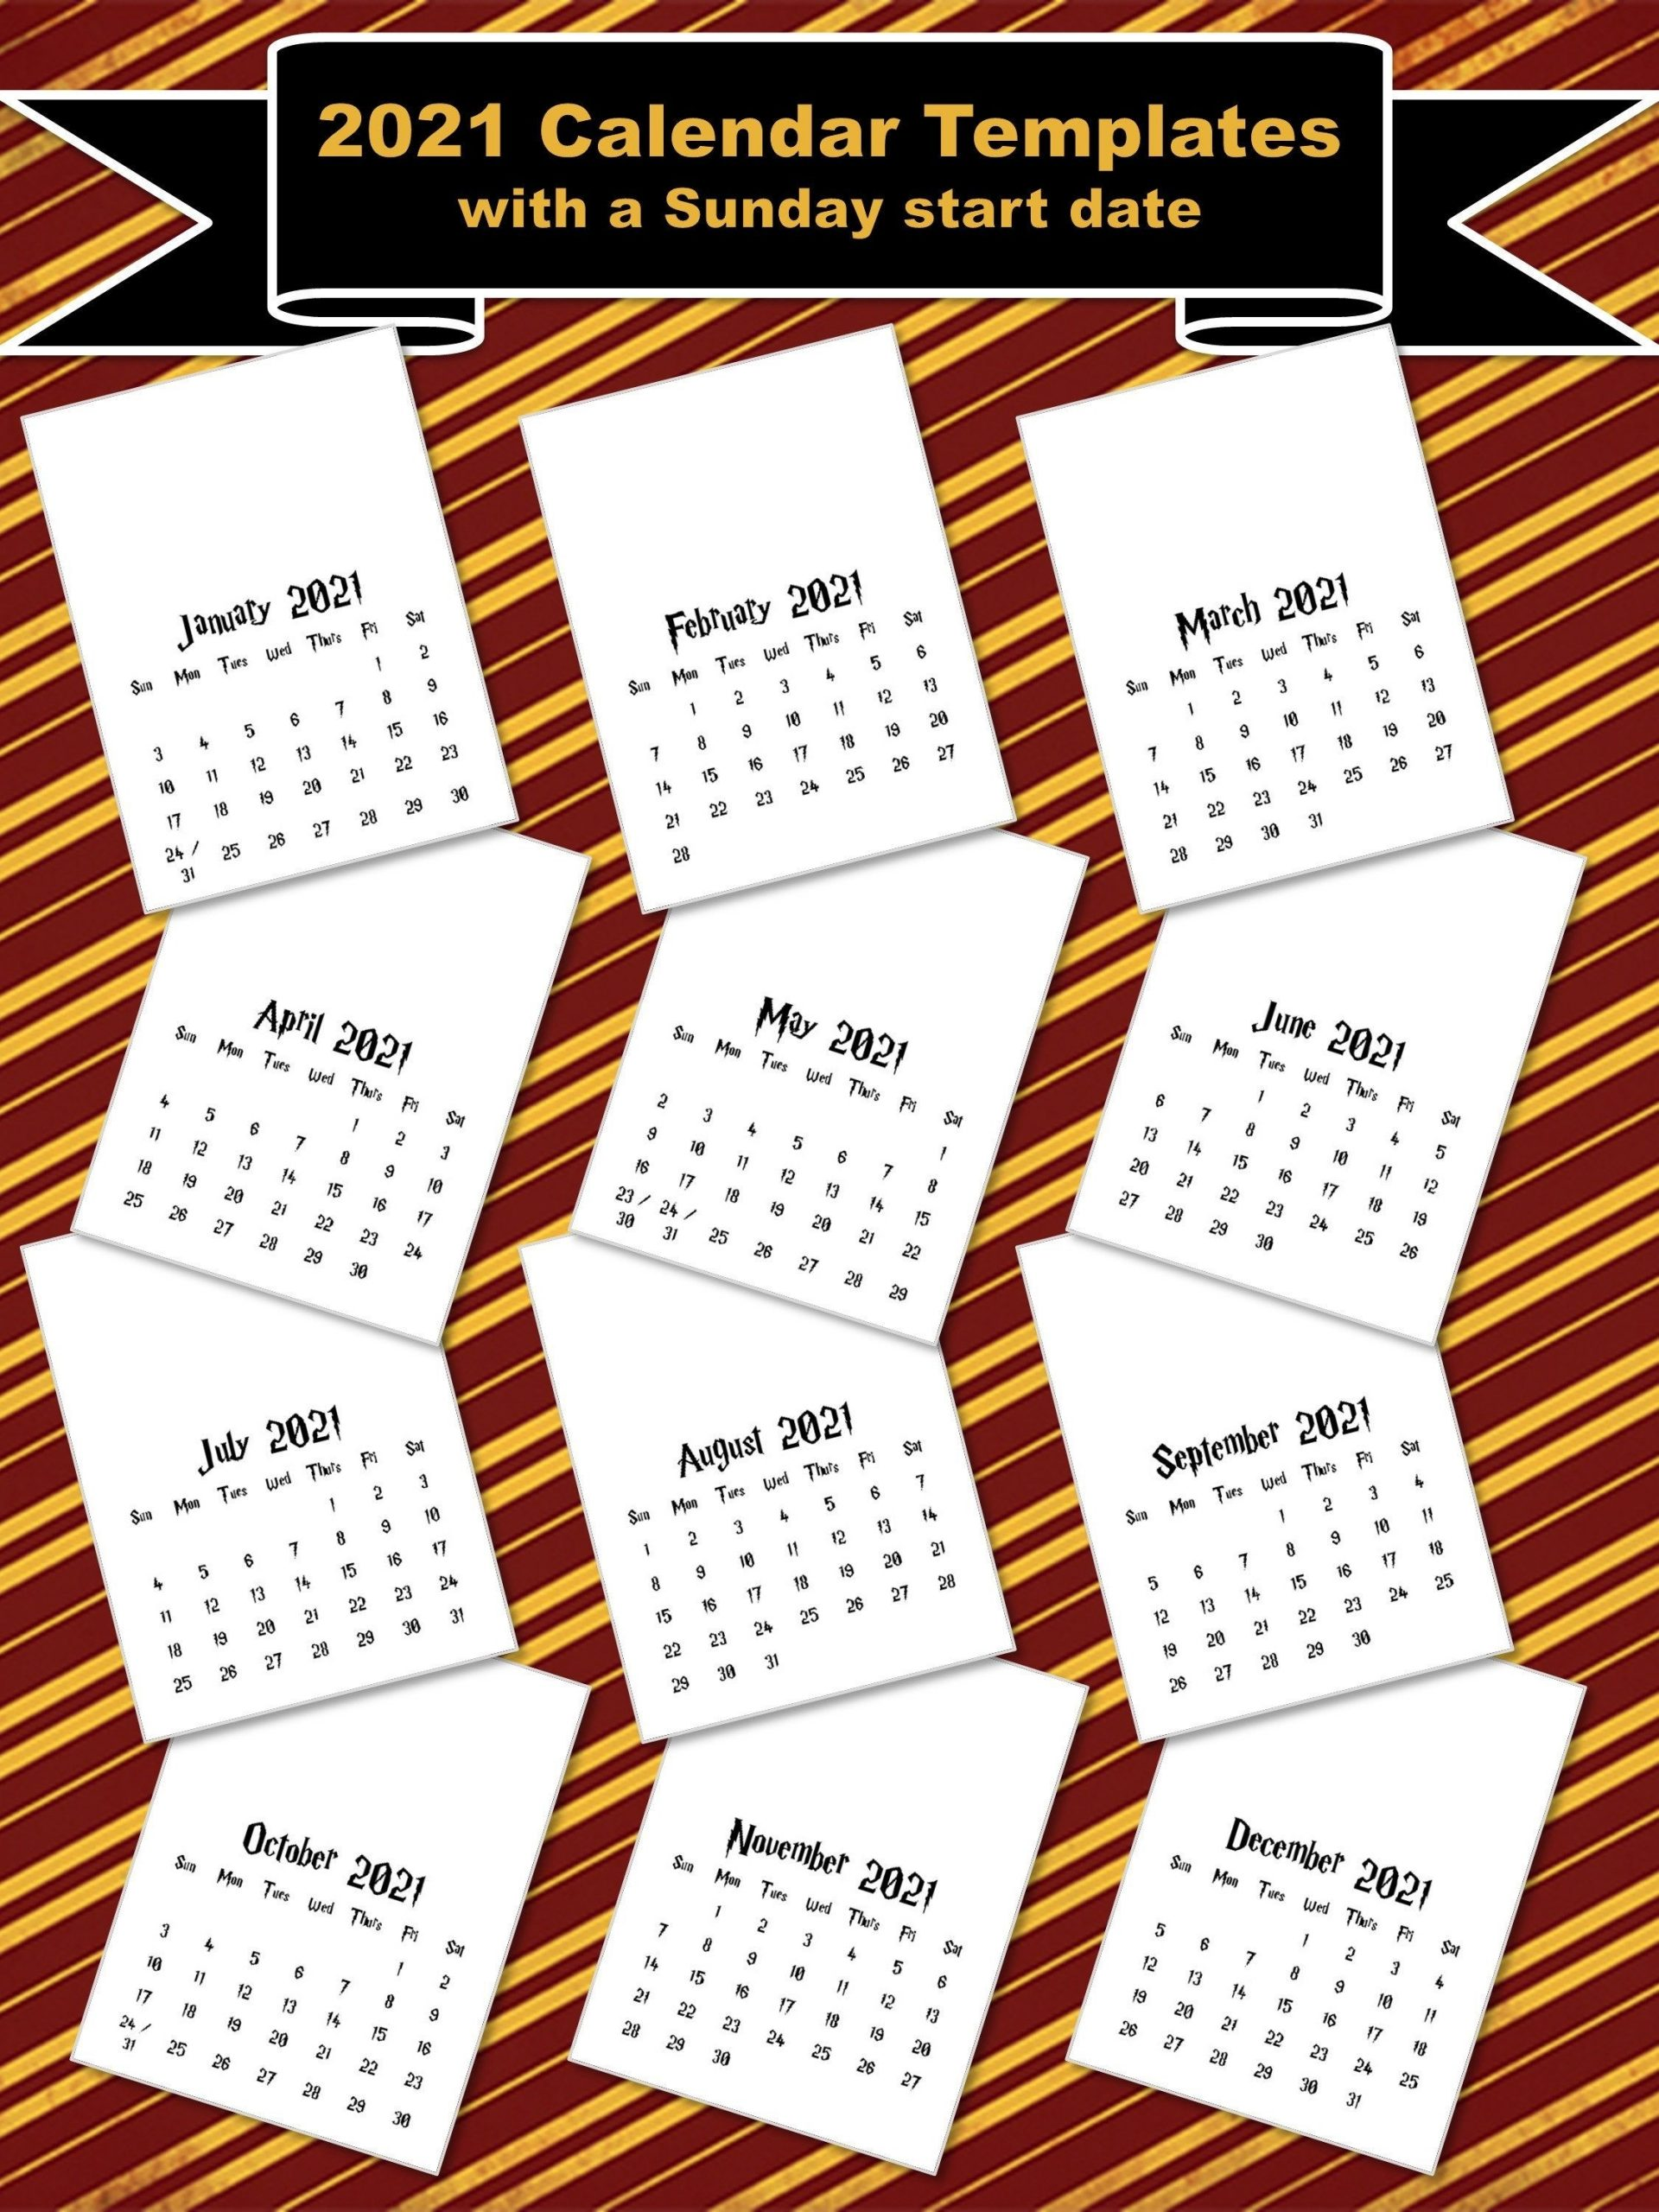 2021 Calendar Templates With Sunday Start 8X11 | Etsy In